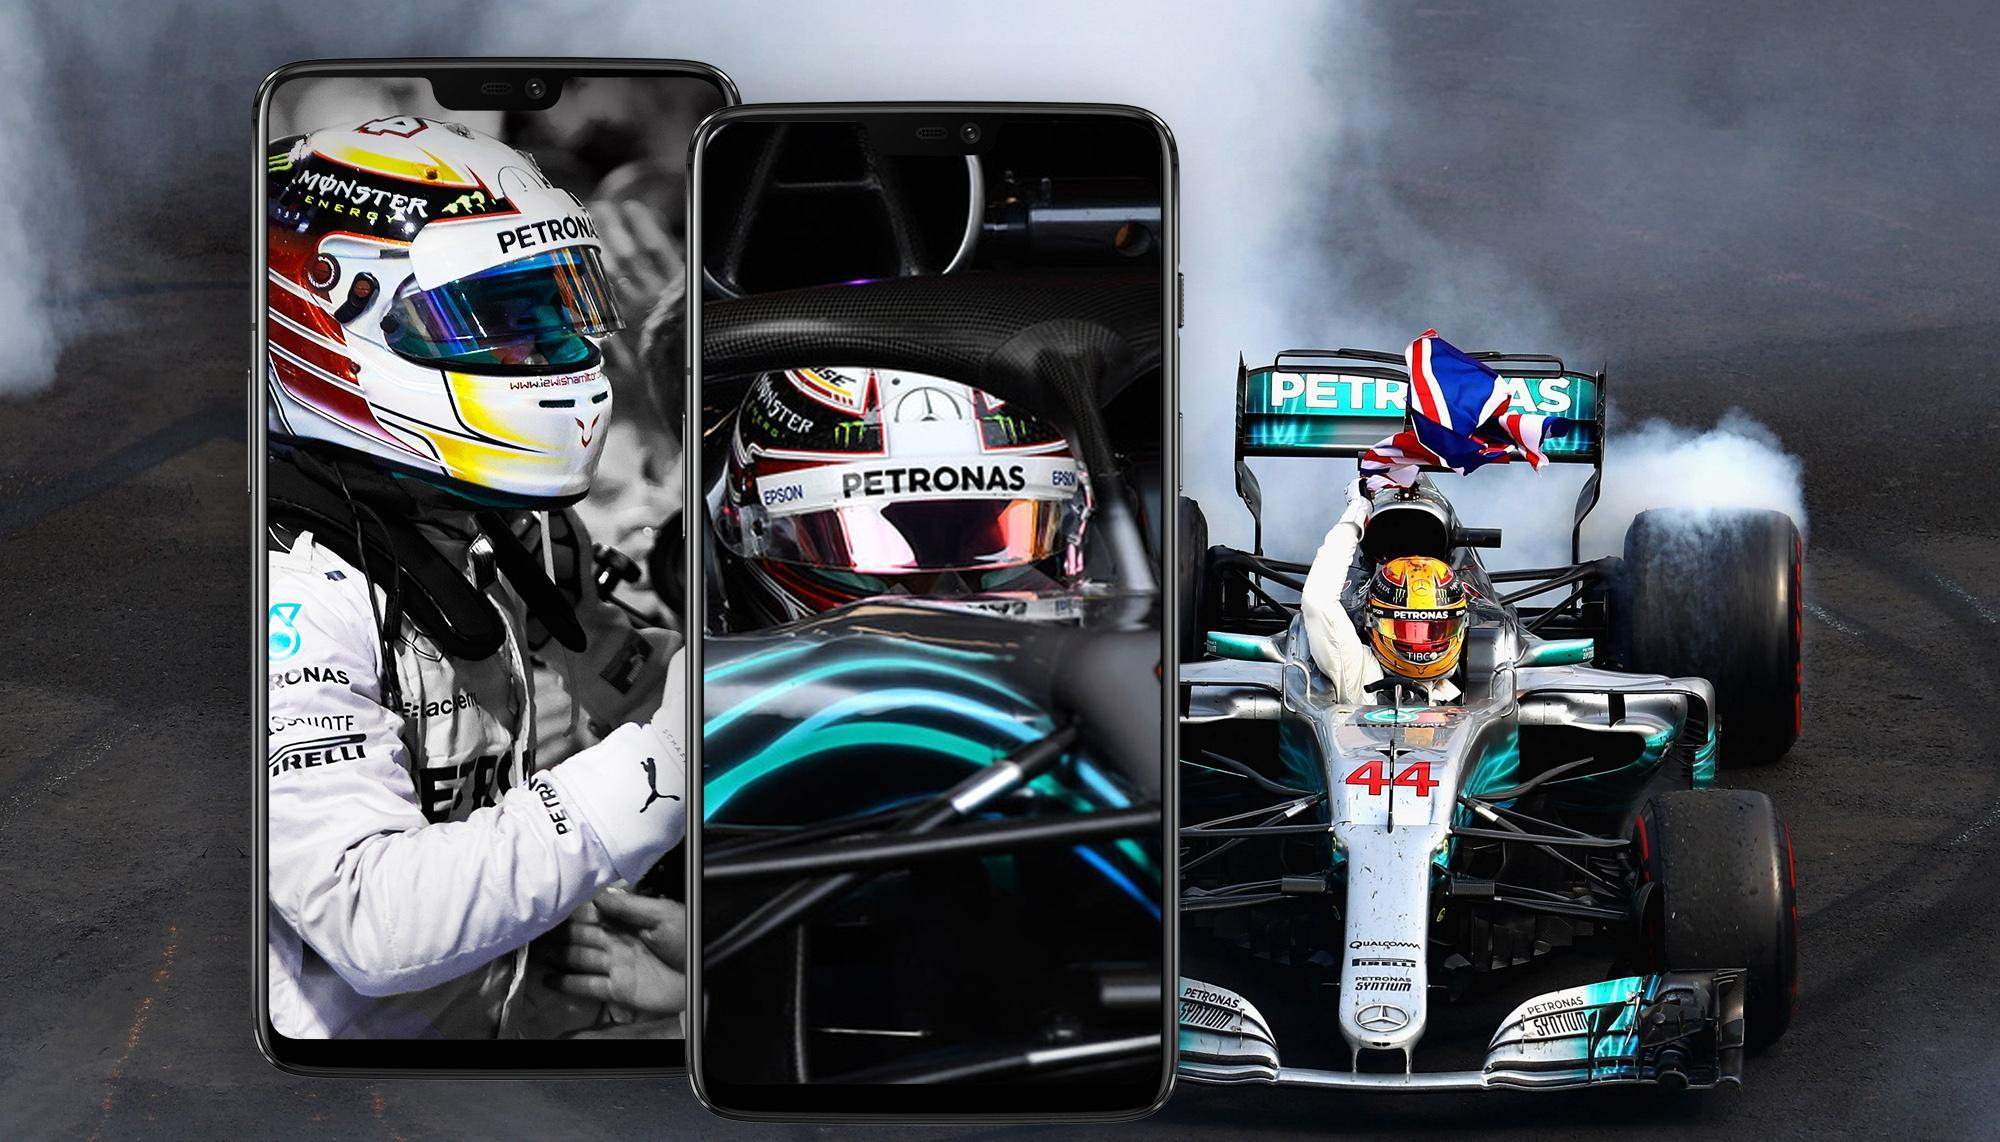 Lewis Hamilton Wallpaper Best Hd For Android Apk Download